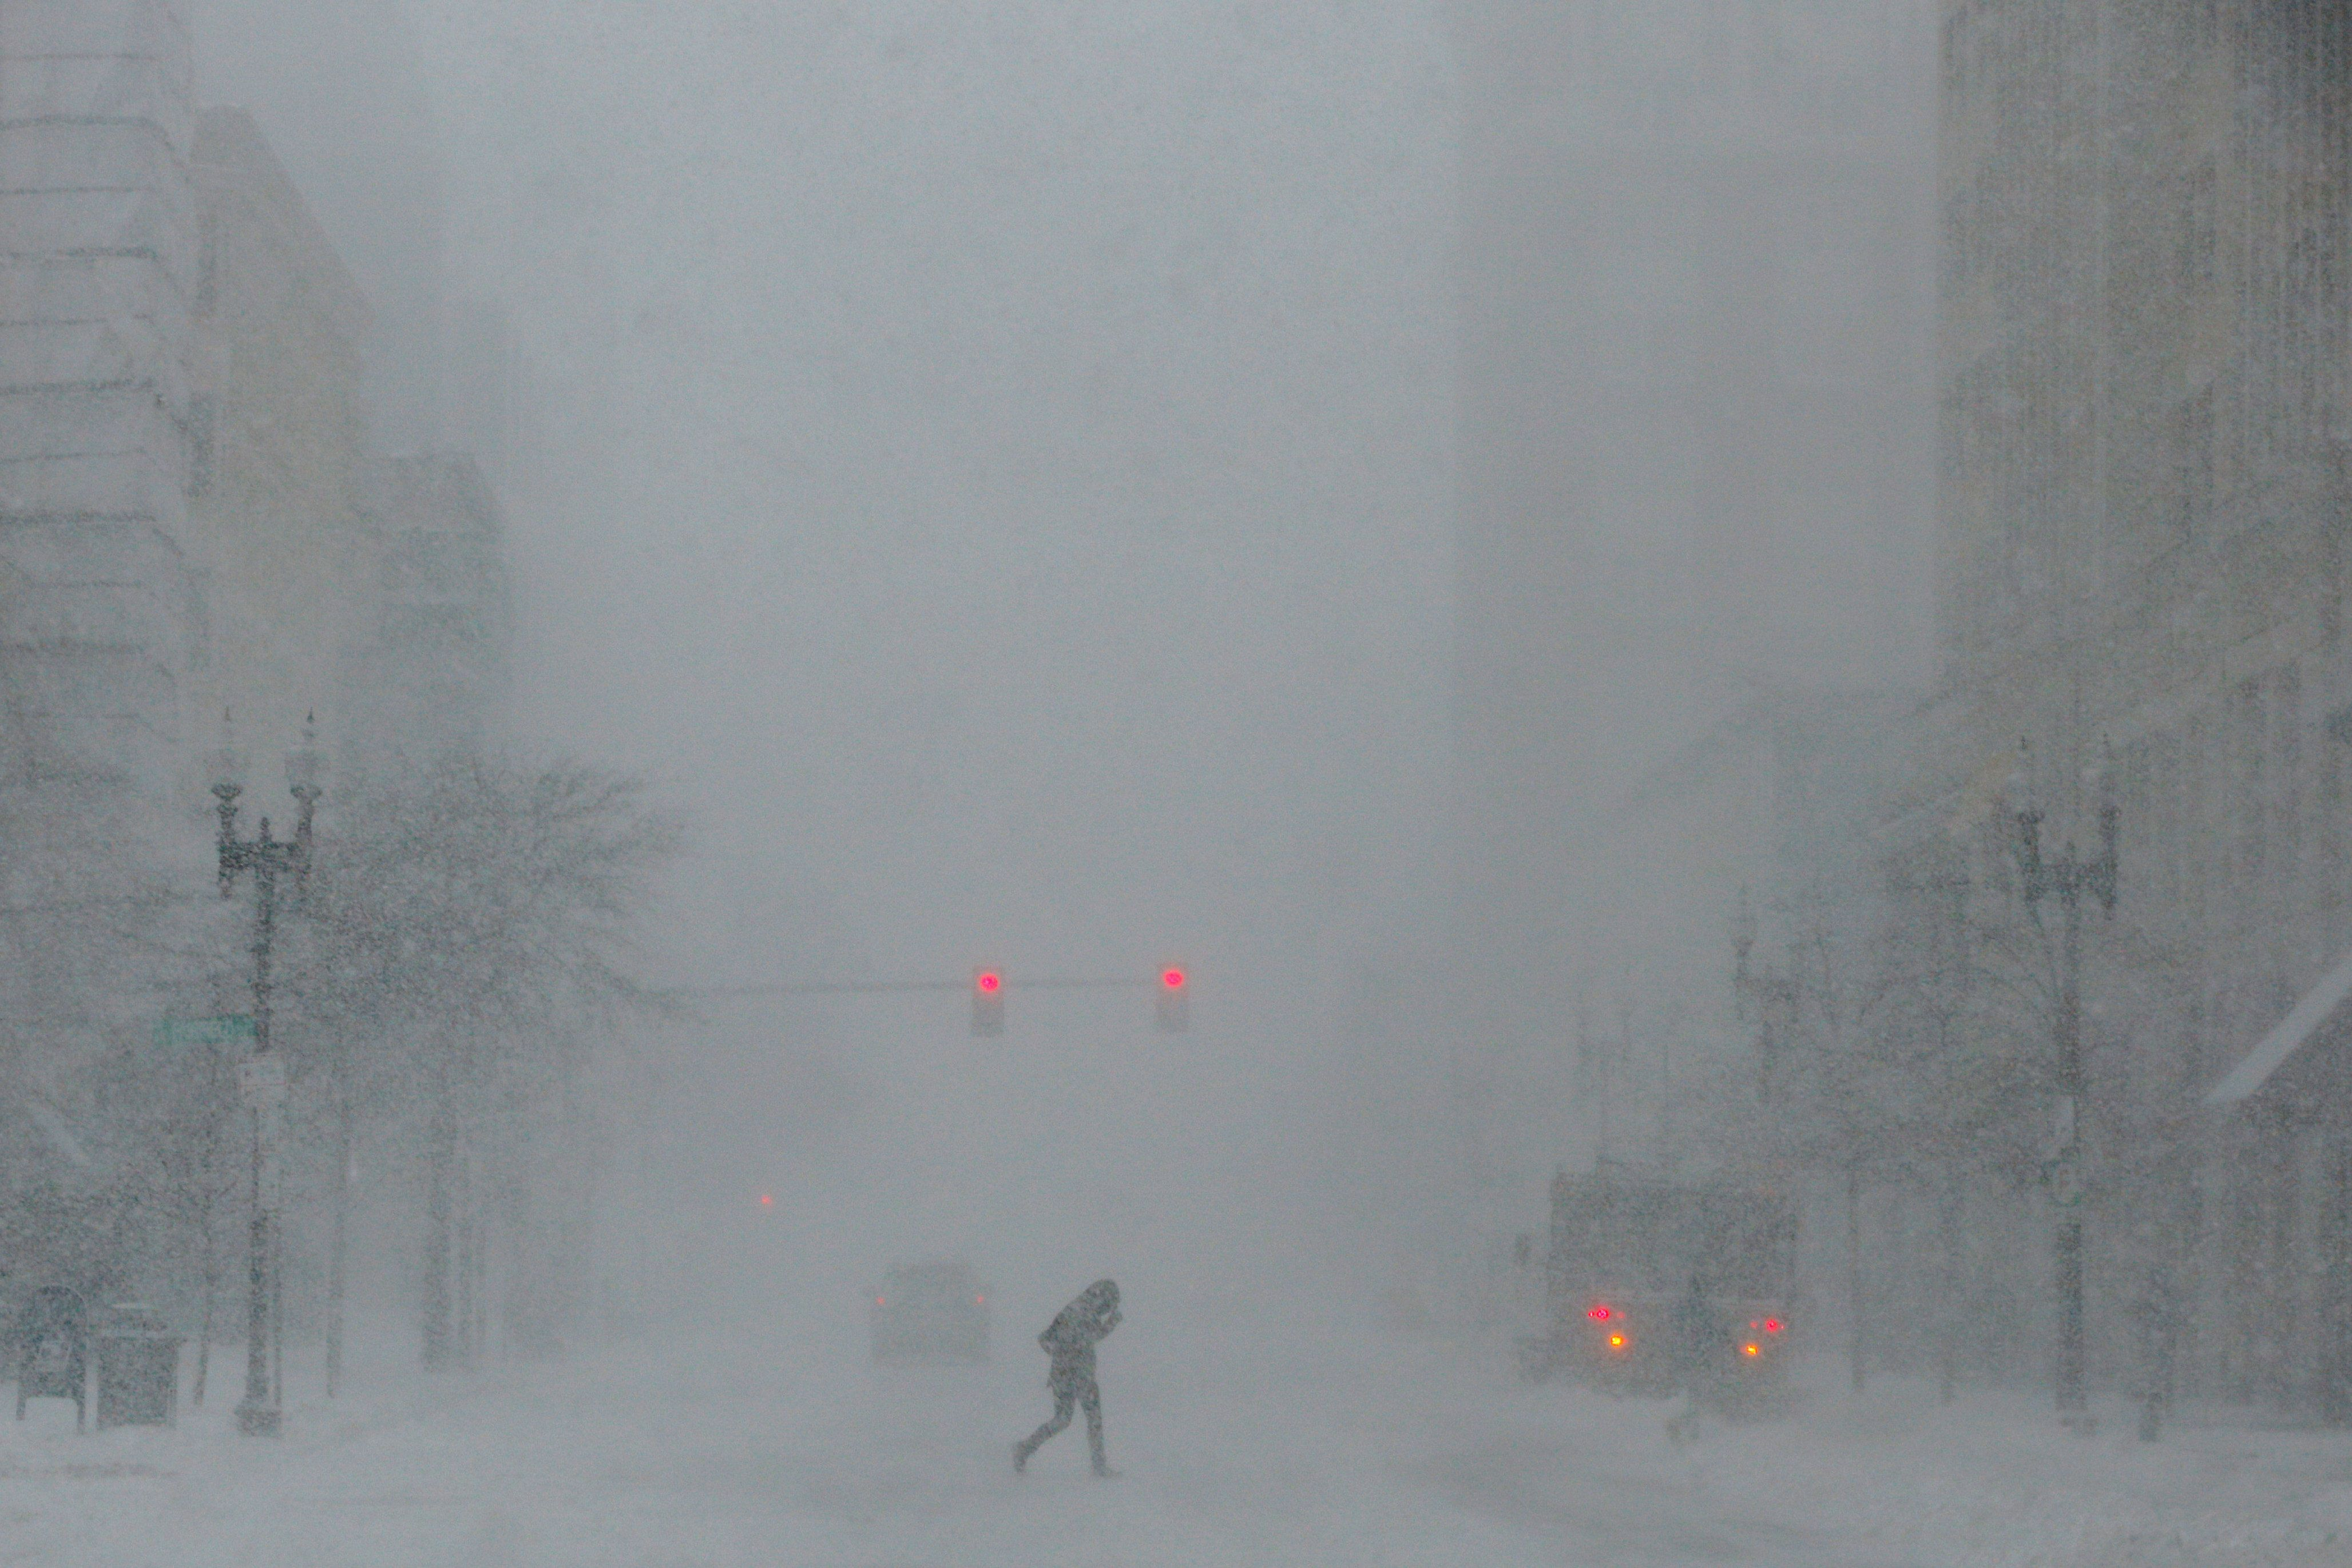 A pedestrian crosses Boylston Street during white-out, blizzard-like conditions in a winter nor'easter snow storm in Boston, Massachusetts, U.S. February 9, 2017.   REUTERS/Brian Snyder